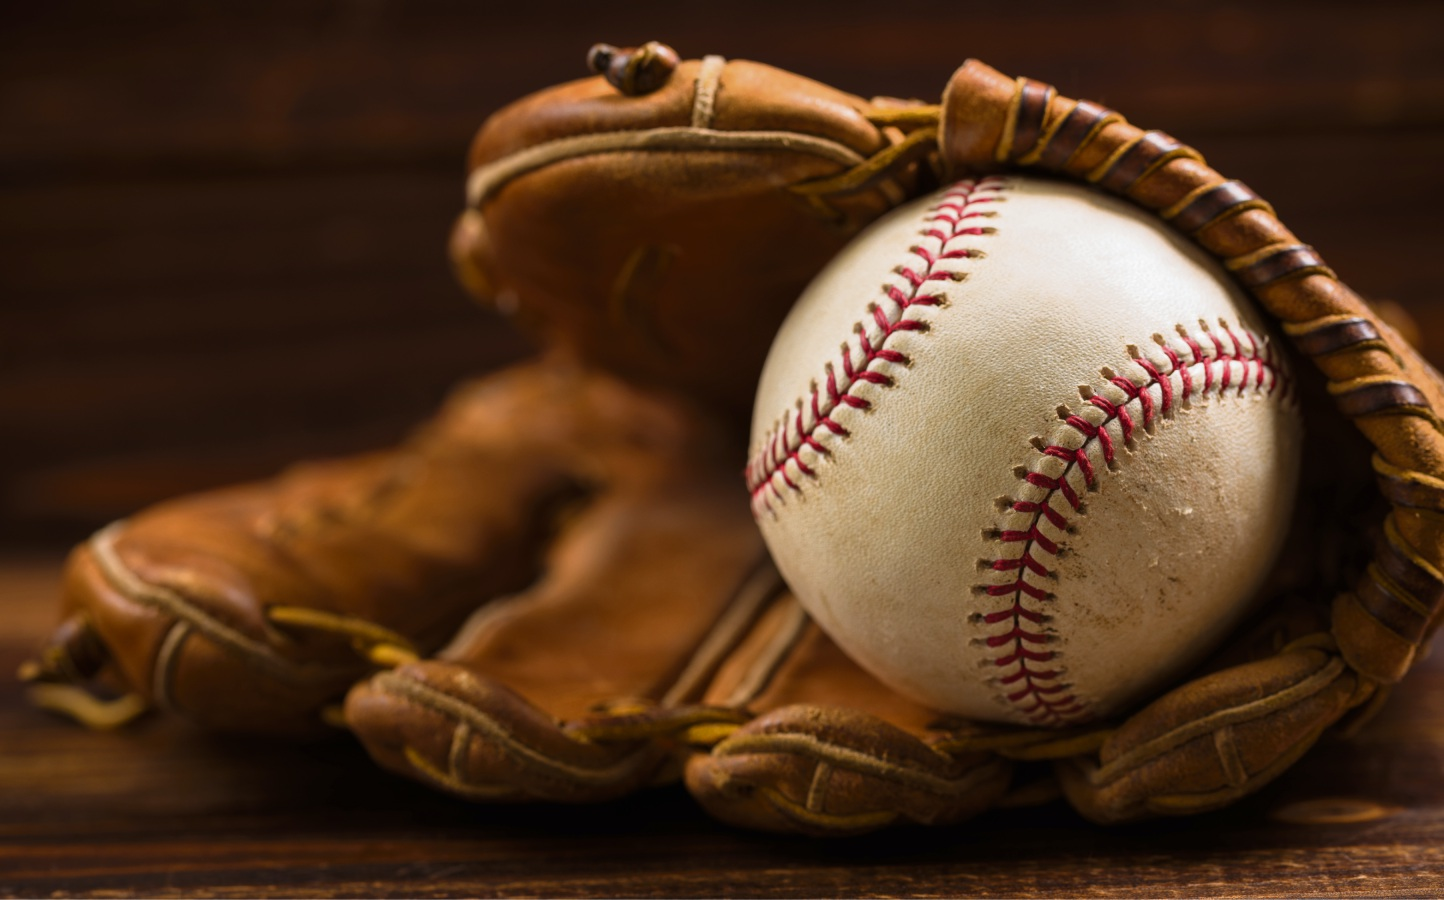 Perth Heat to host home playoff after series split with Canberra Cavalry